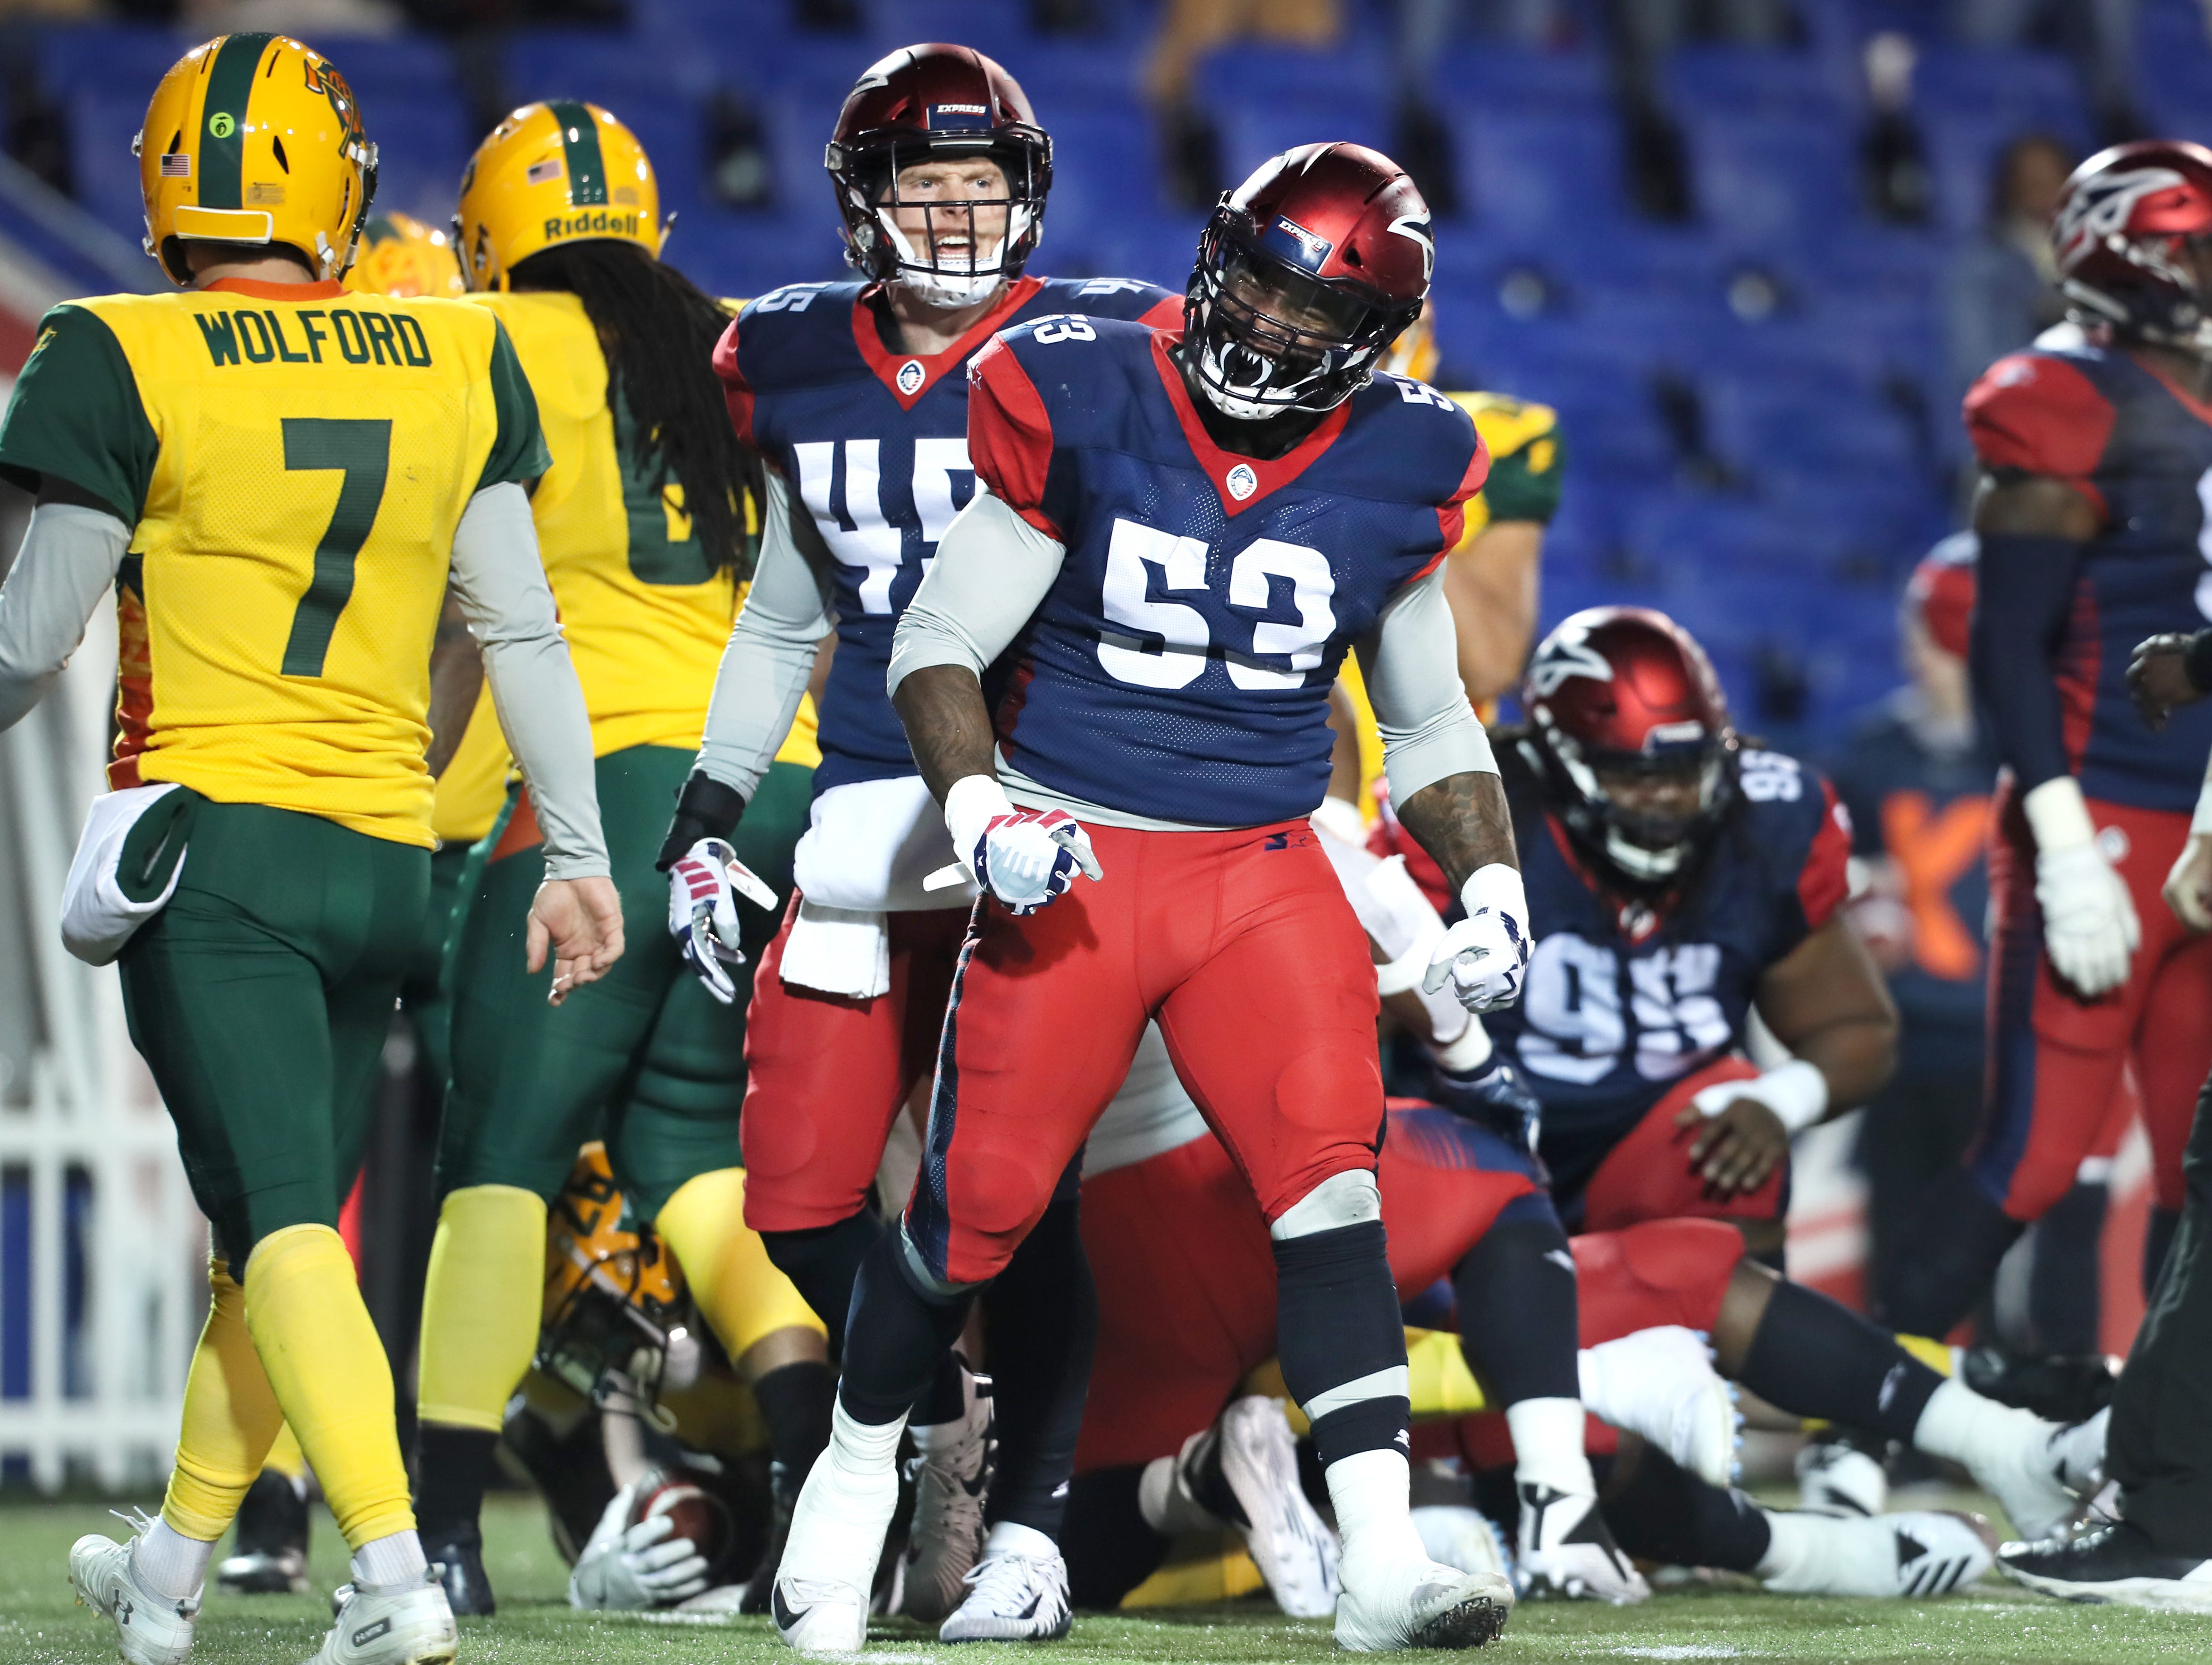 Memphis Express linebacker Drew Jackson celebrates a tackle against the Arizona Hotshots during their game at the Liberty Bowl on Saturday, Feb. 16, 2019.